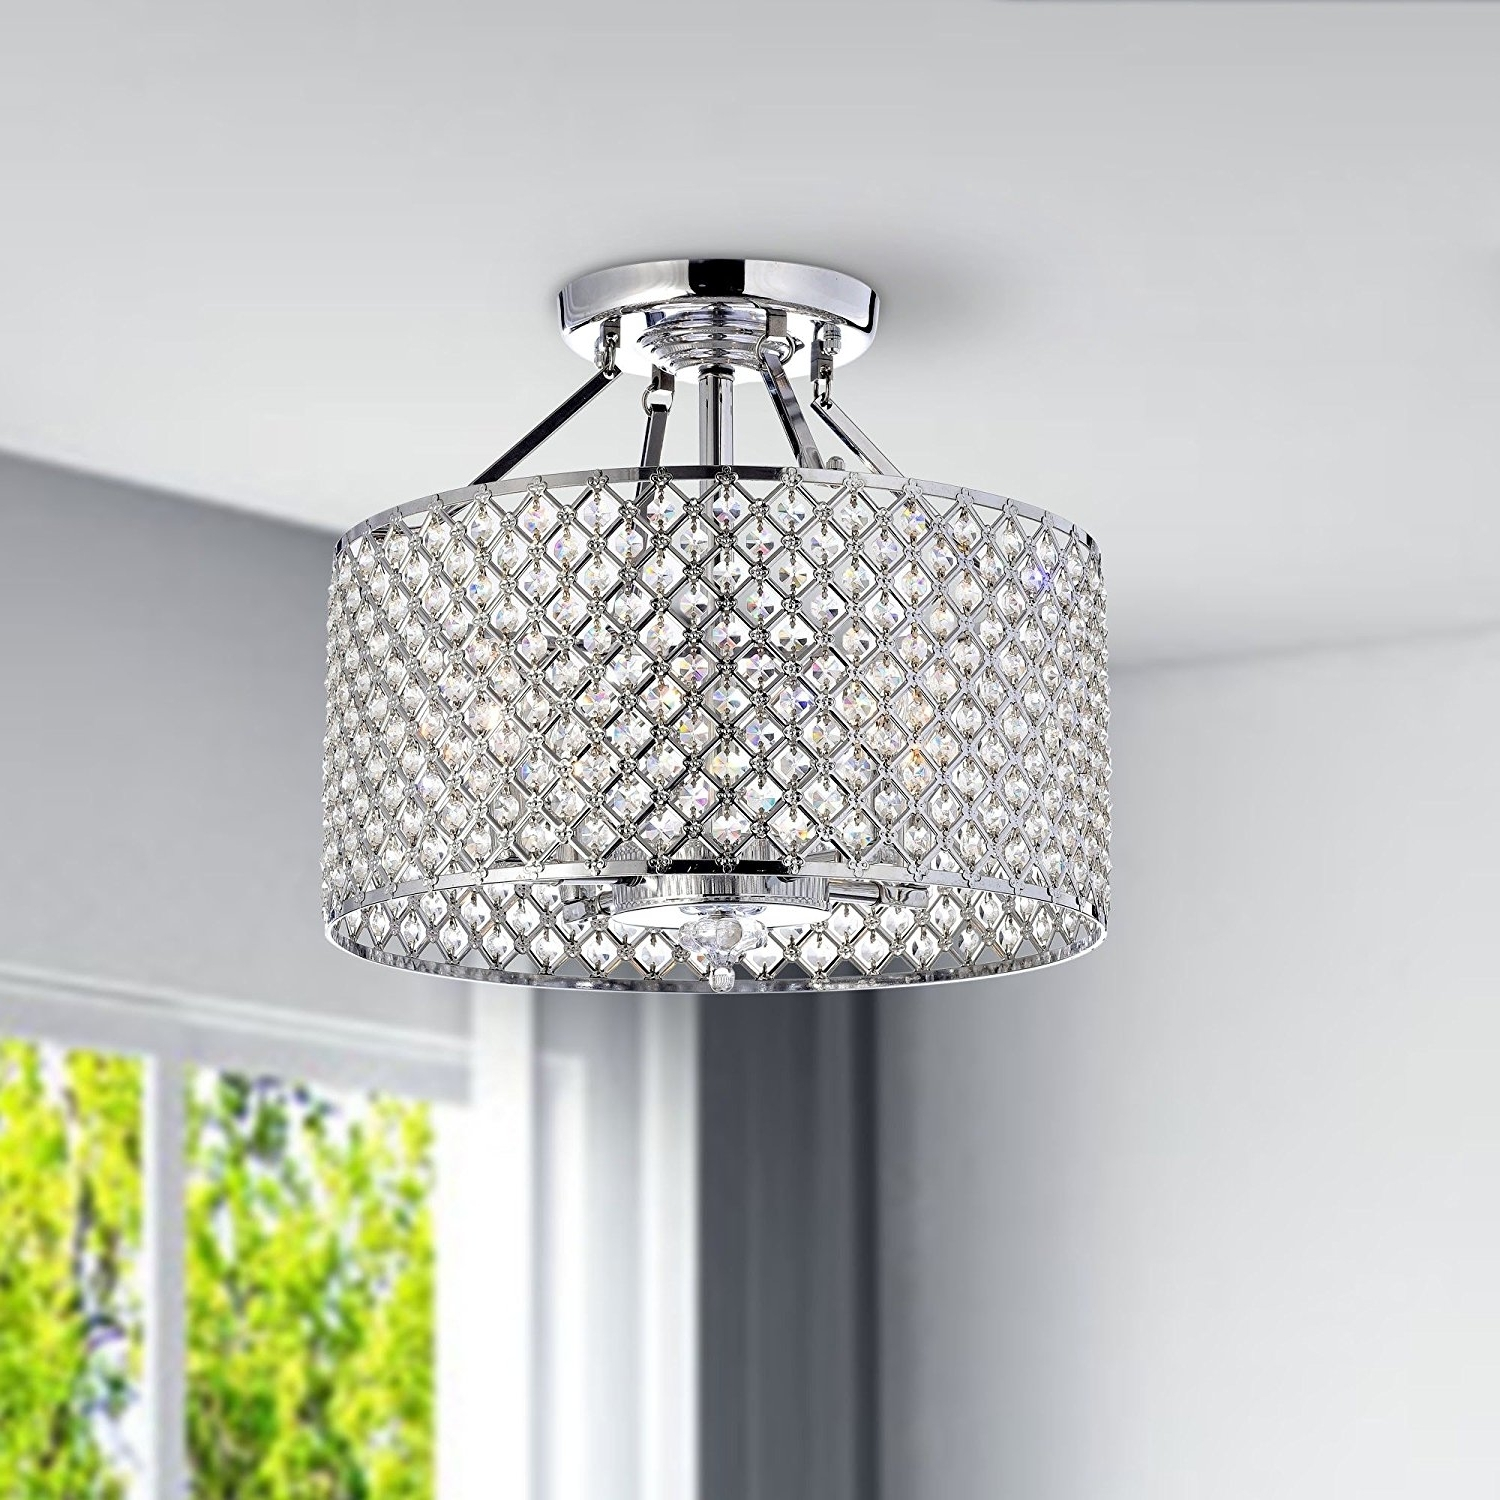 4 Light Chrome Crystal Chandeliers Inside Well Known Chrome / Crystal 4 Light Round Ceiling Chandelier – – Amazon (View 2 of 15)